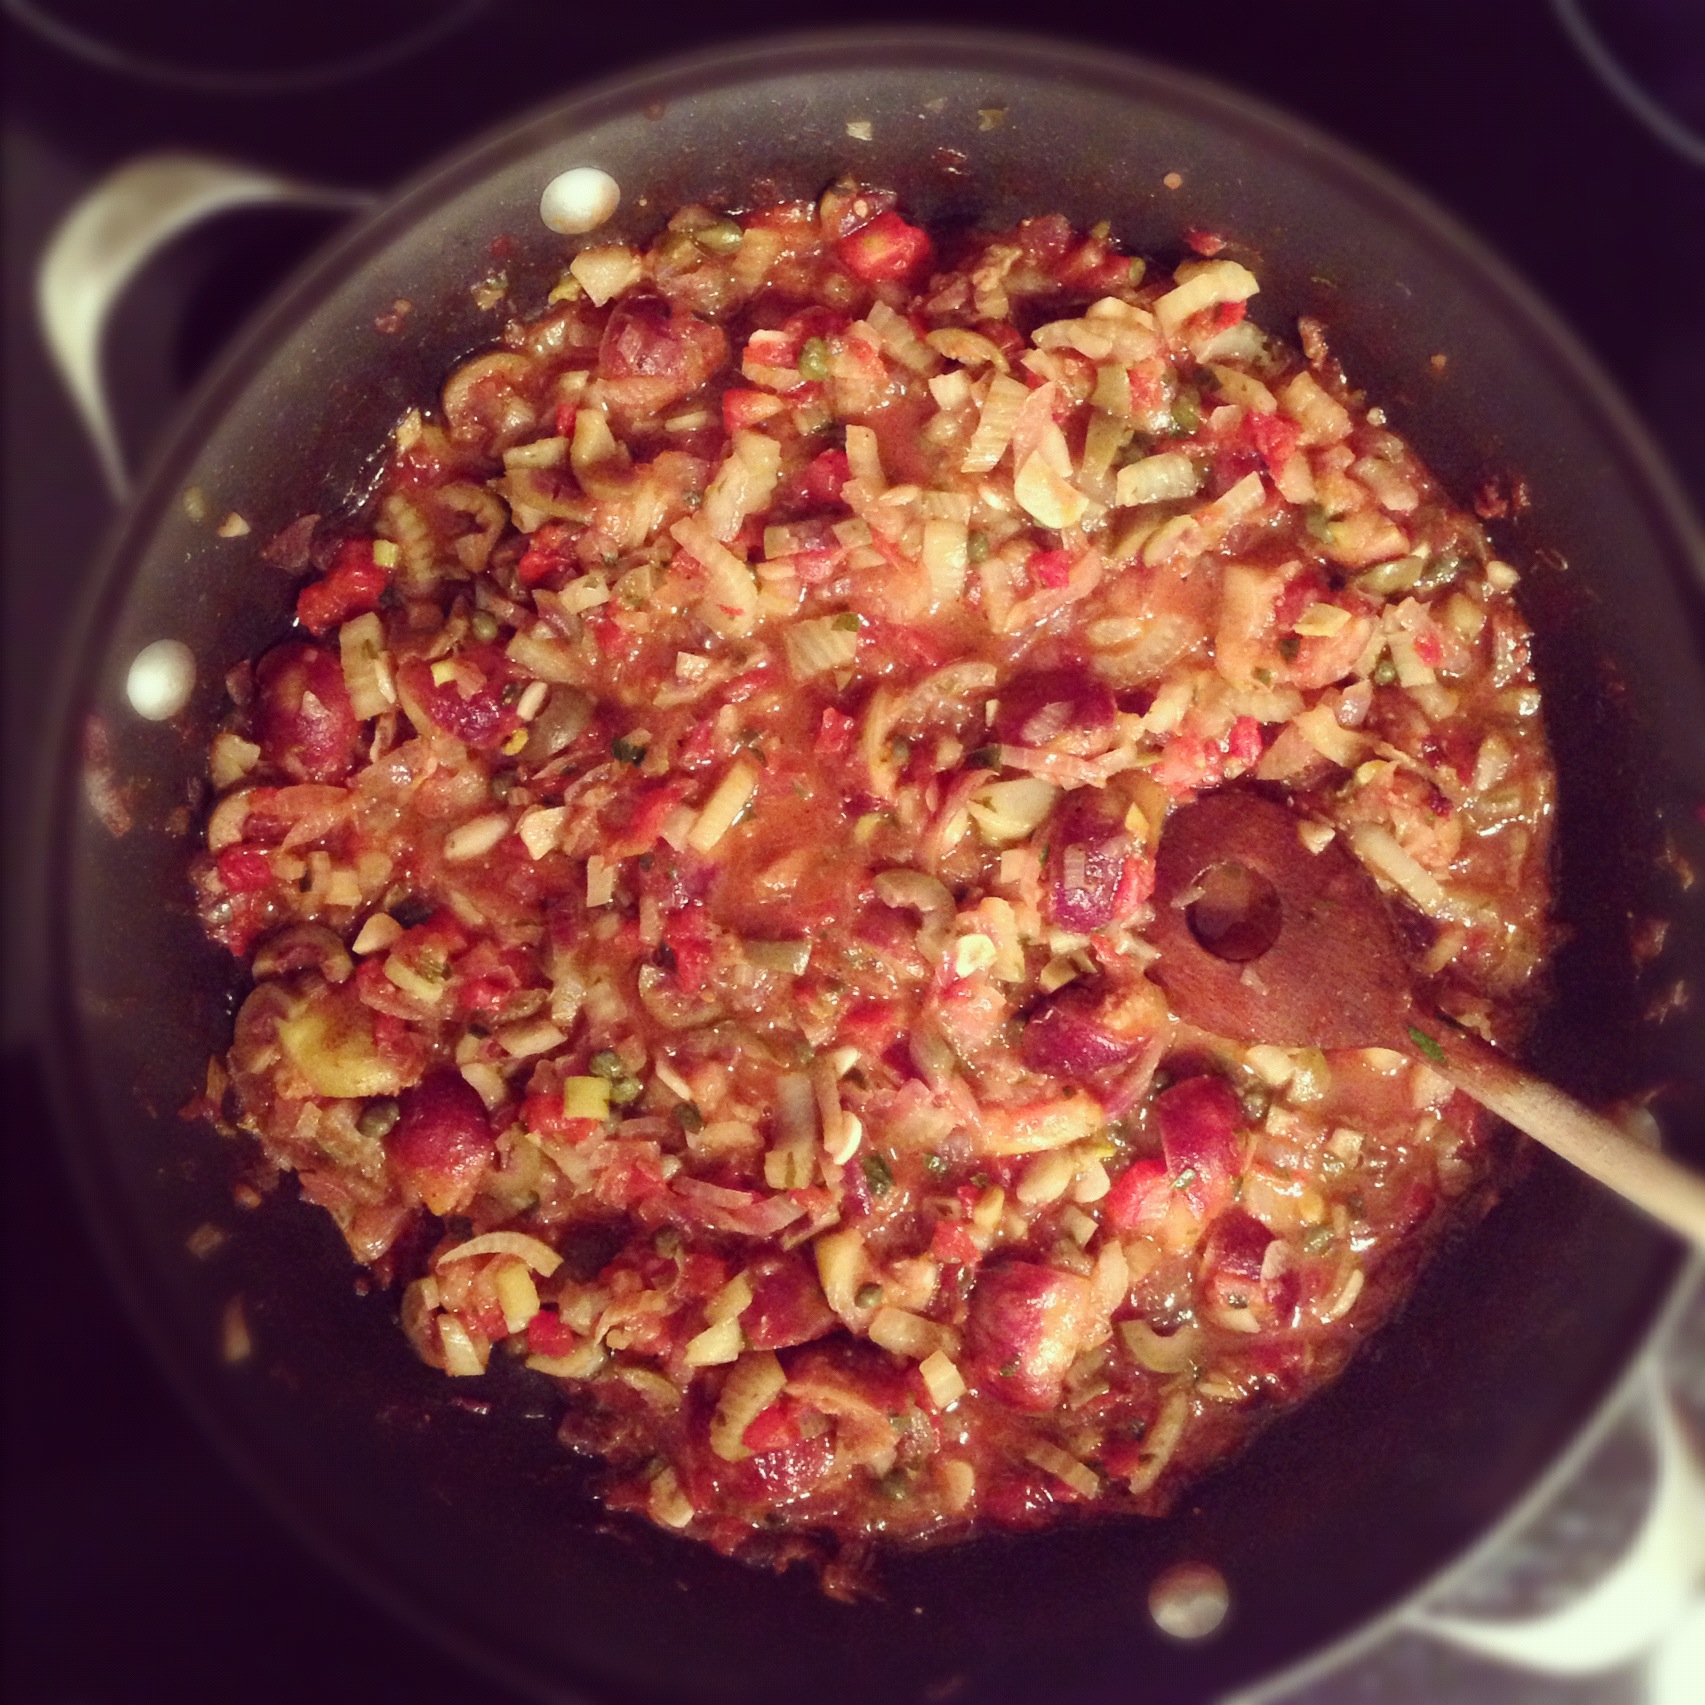 Fig and Fennel Caponata (in the making)